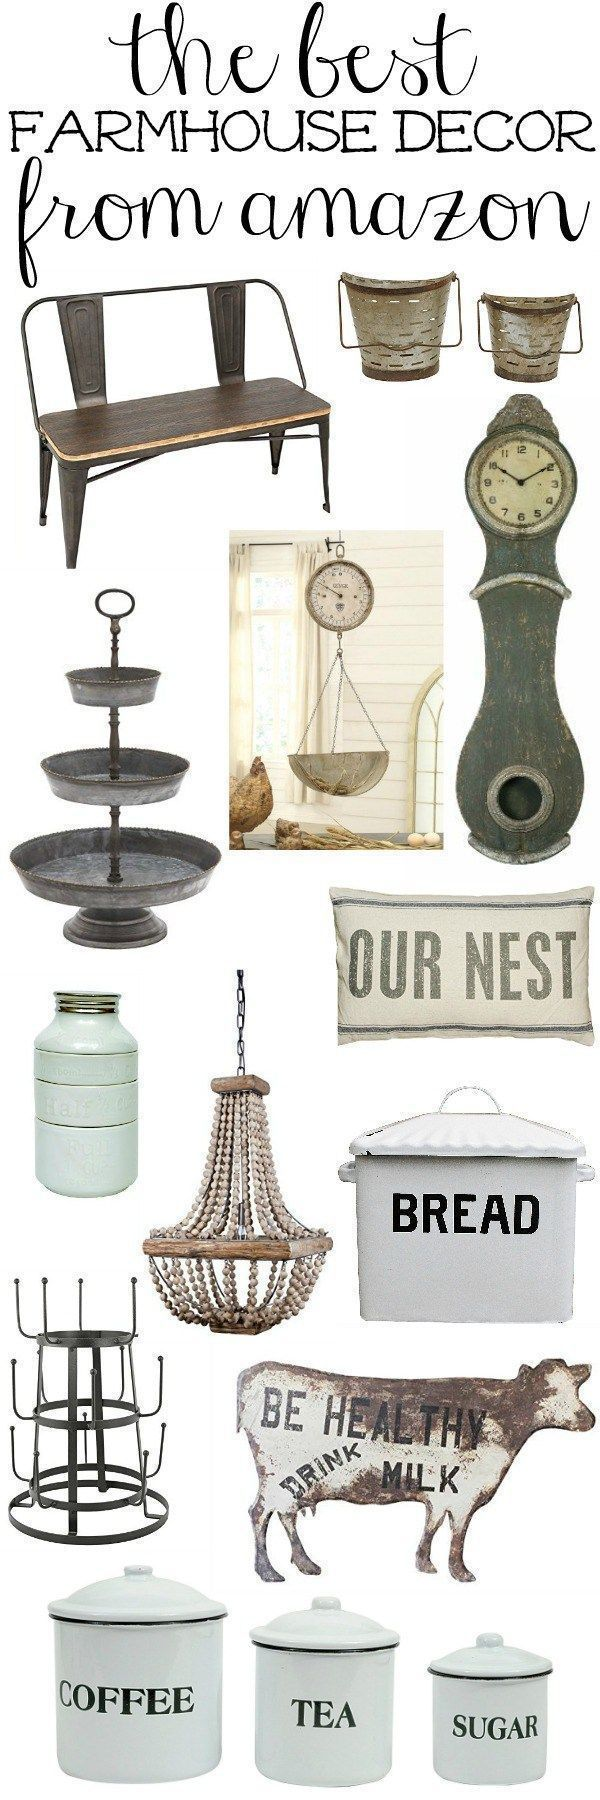 Awesome Awesome Awesome The Best Farmhouse Decor From Amazon By Best Home